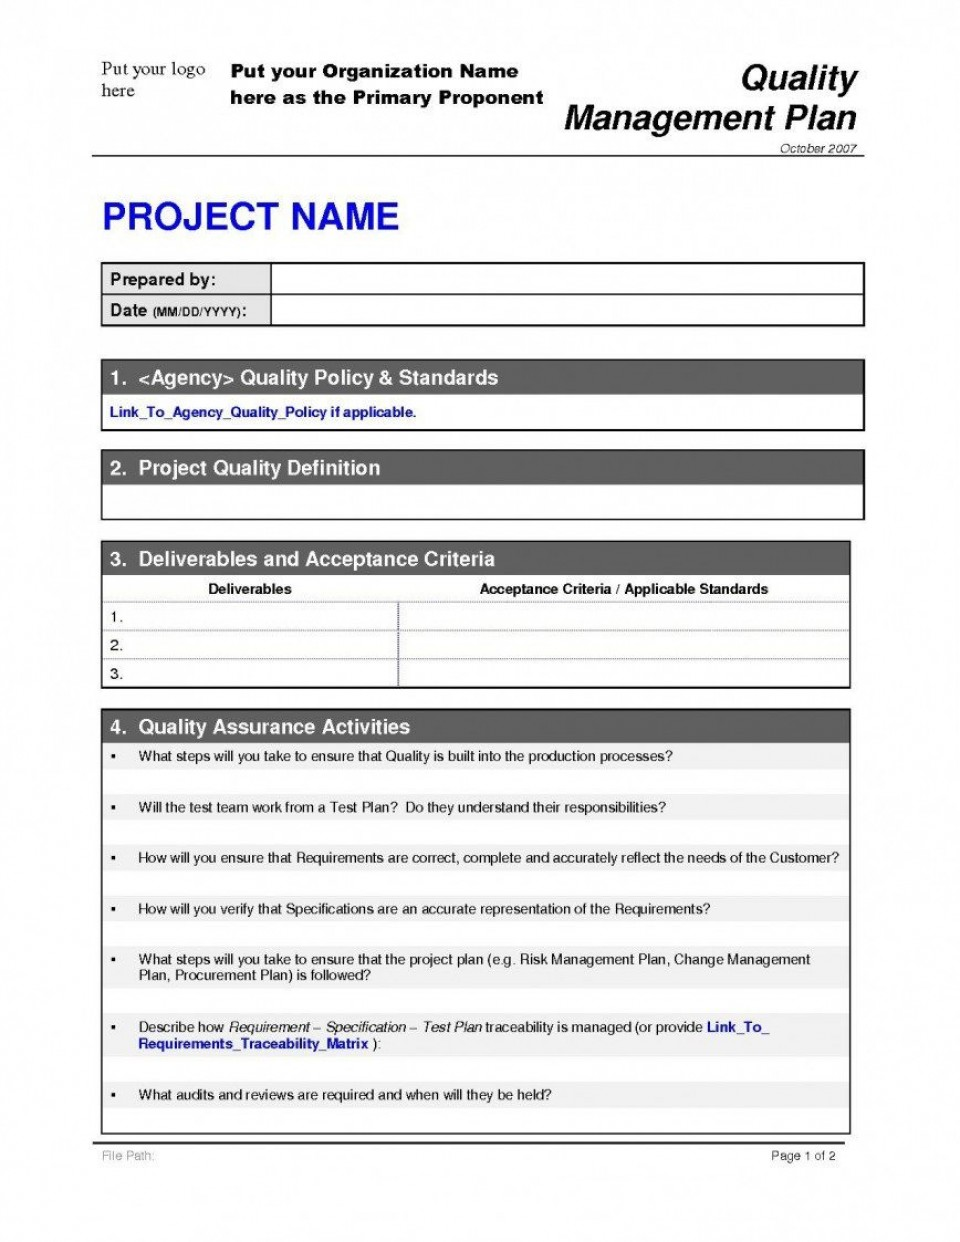 008 Striking Project Management Plan Template Pmi Picture  Pmp Quality Pmbok960